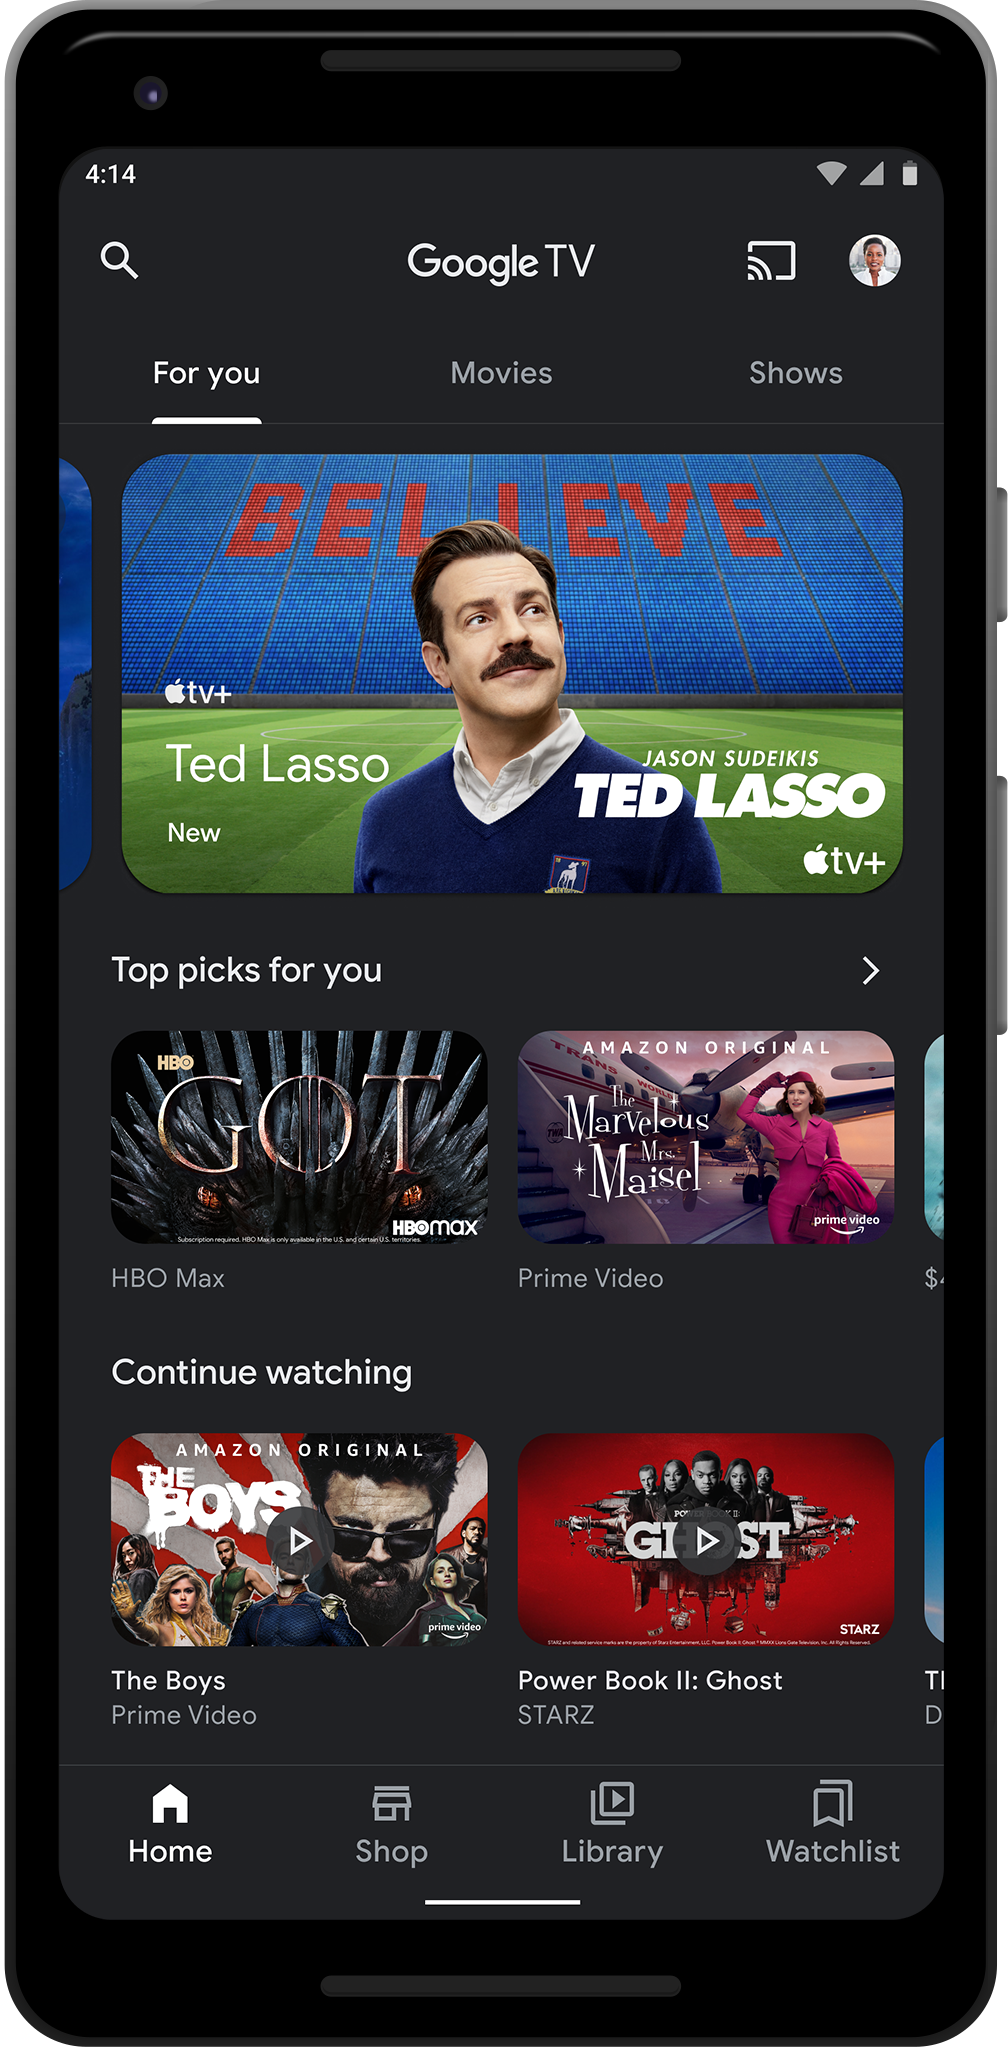 Google TV mobile app redesign adds new services and recommendations